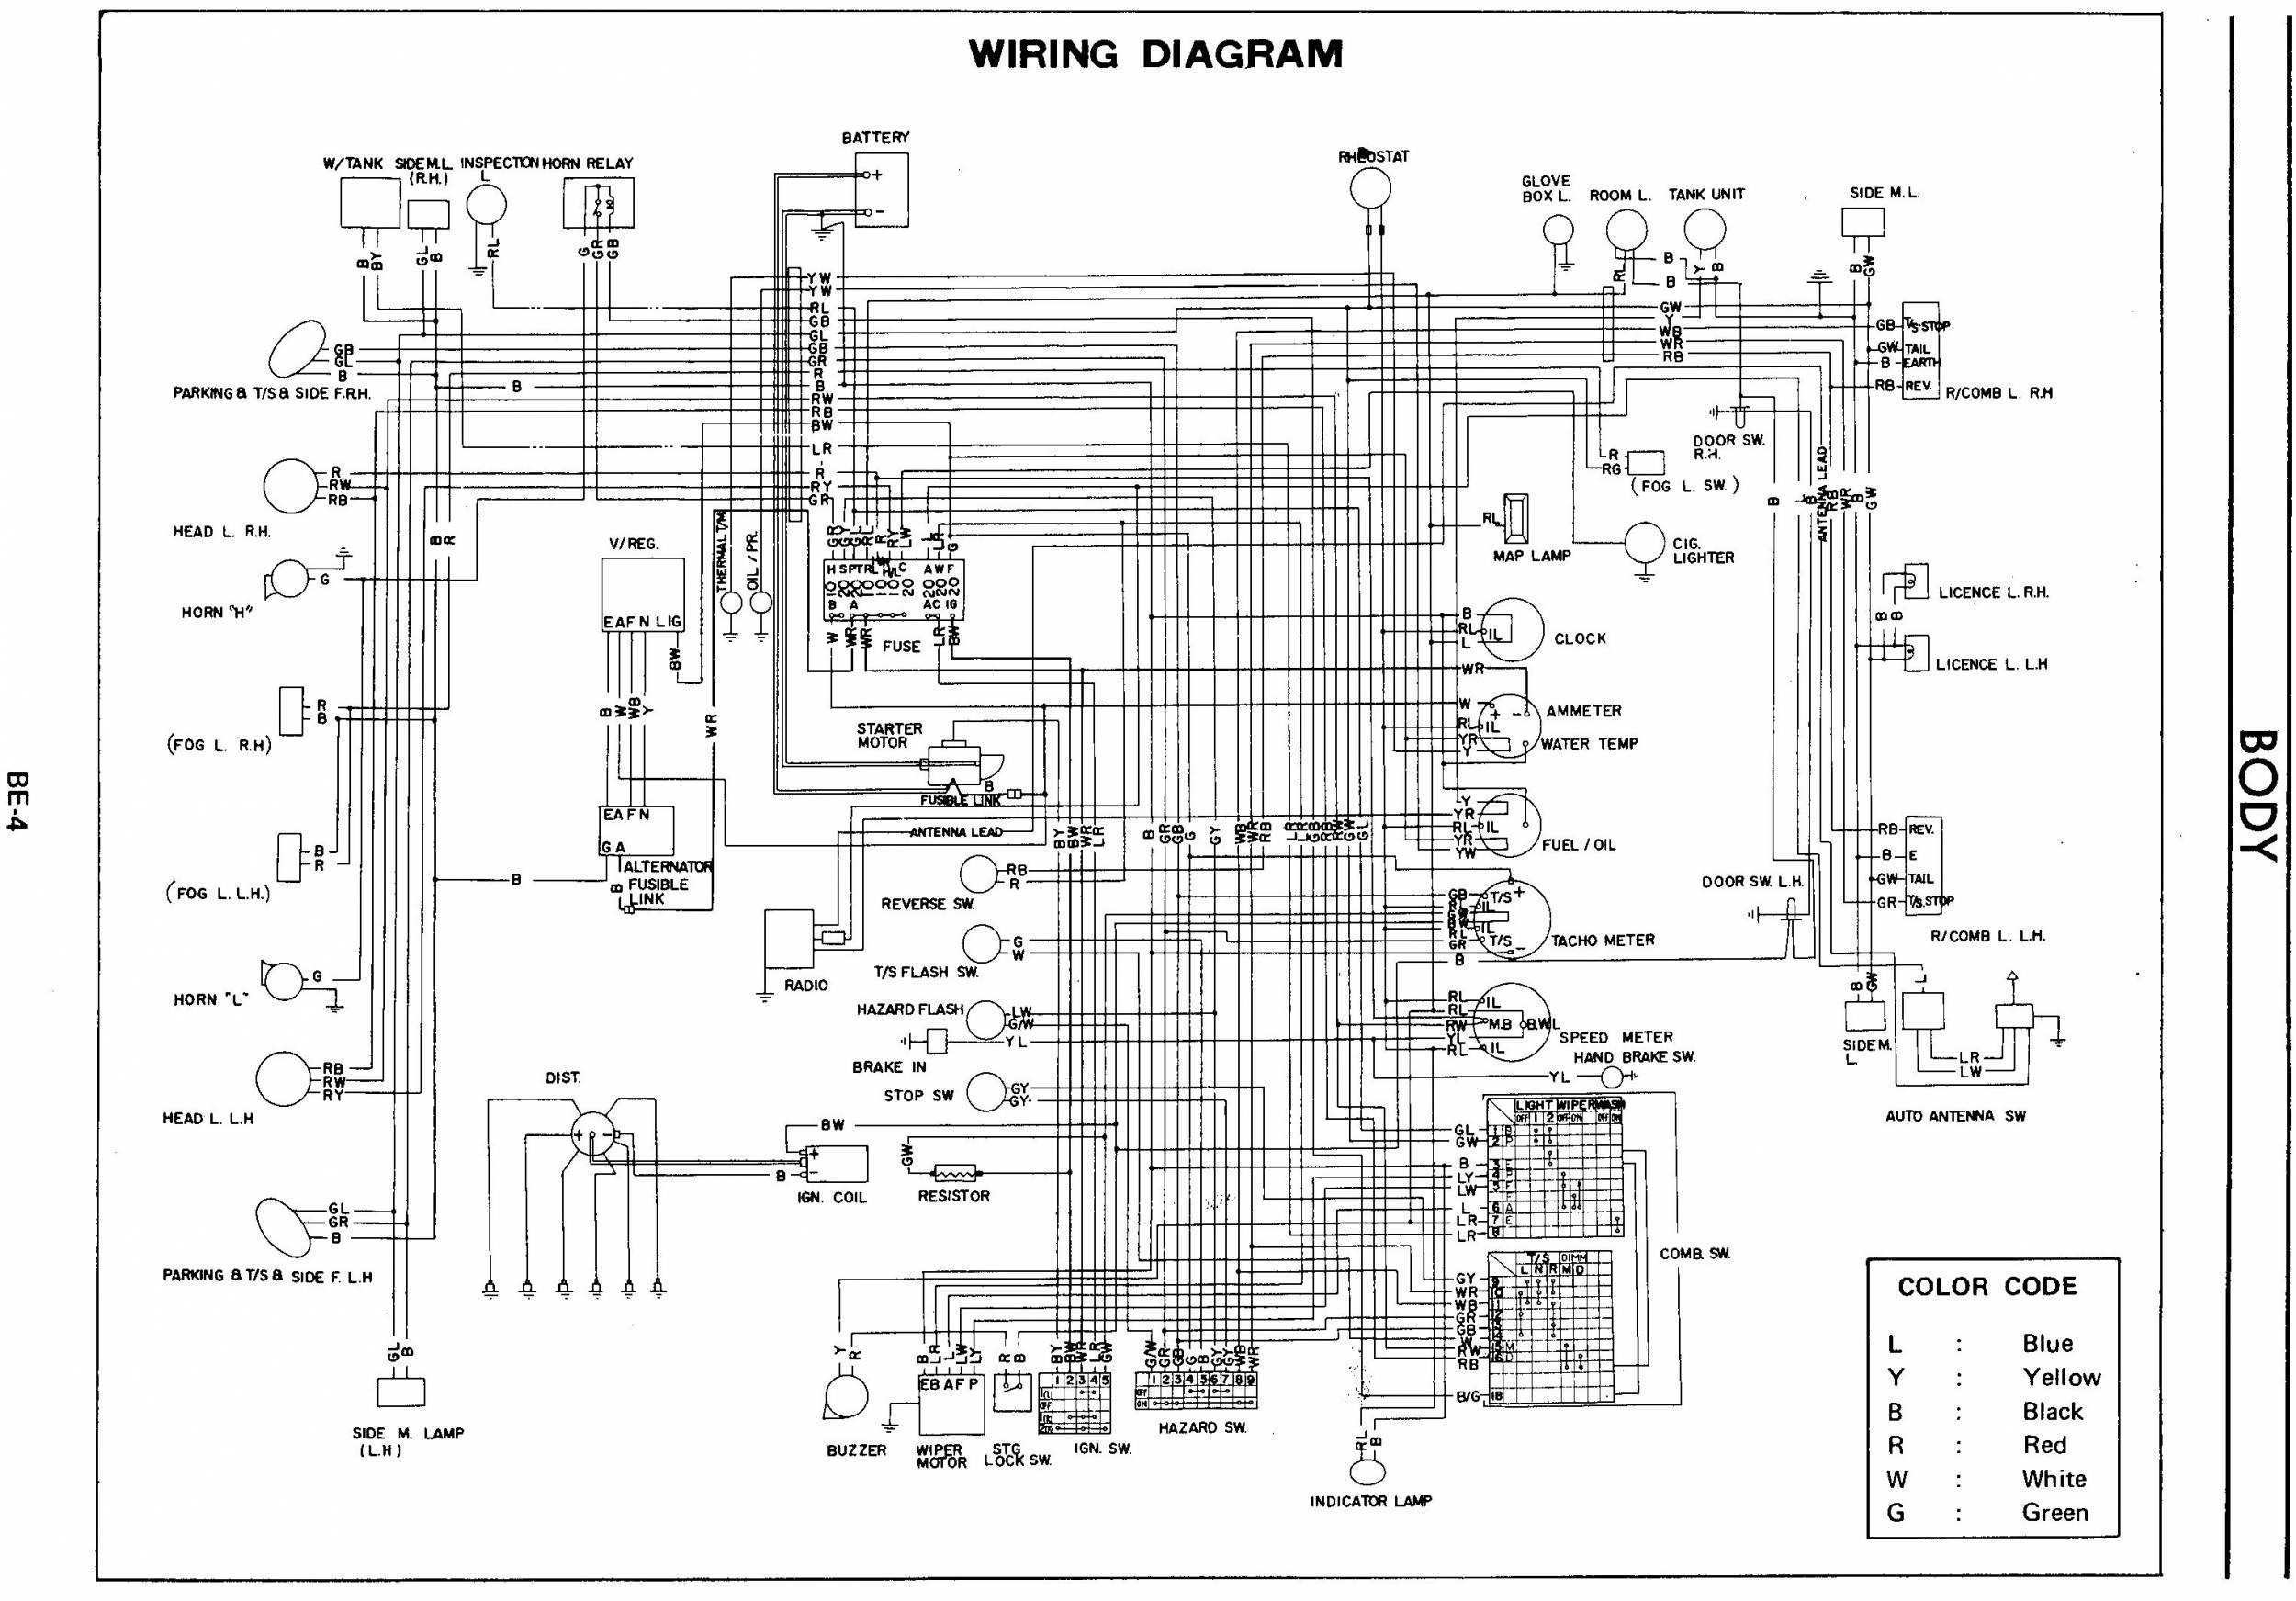 Remarkable 1966 Mercedes 230S Wiring Basic Electronics Wiring Diagram Wiring Digital Resources Llinedefiancerspsorg